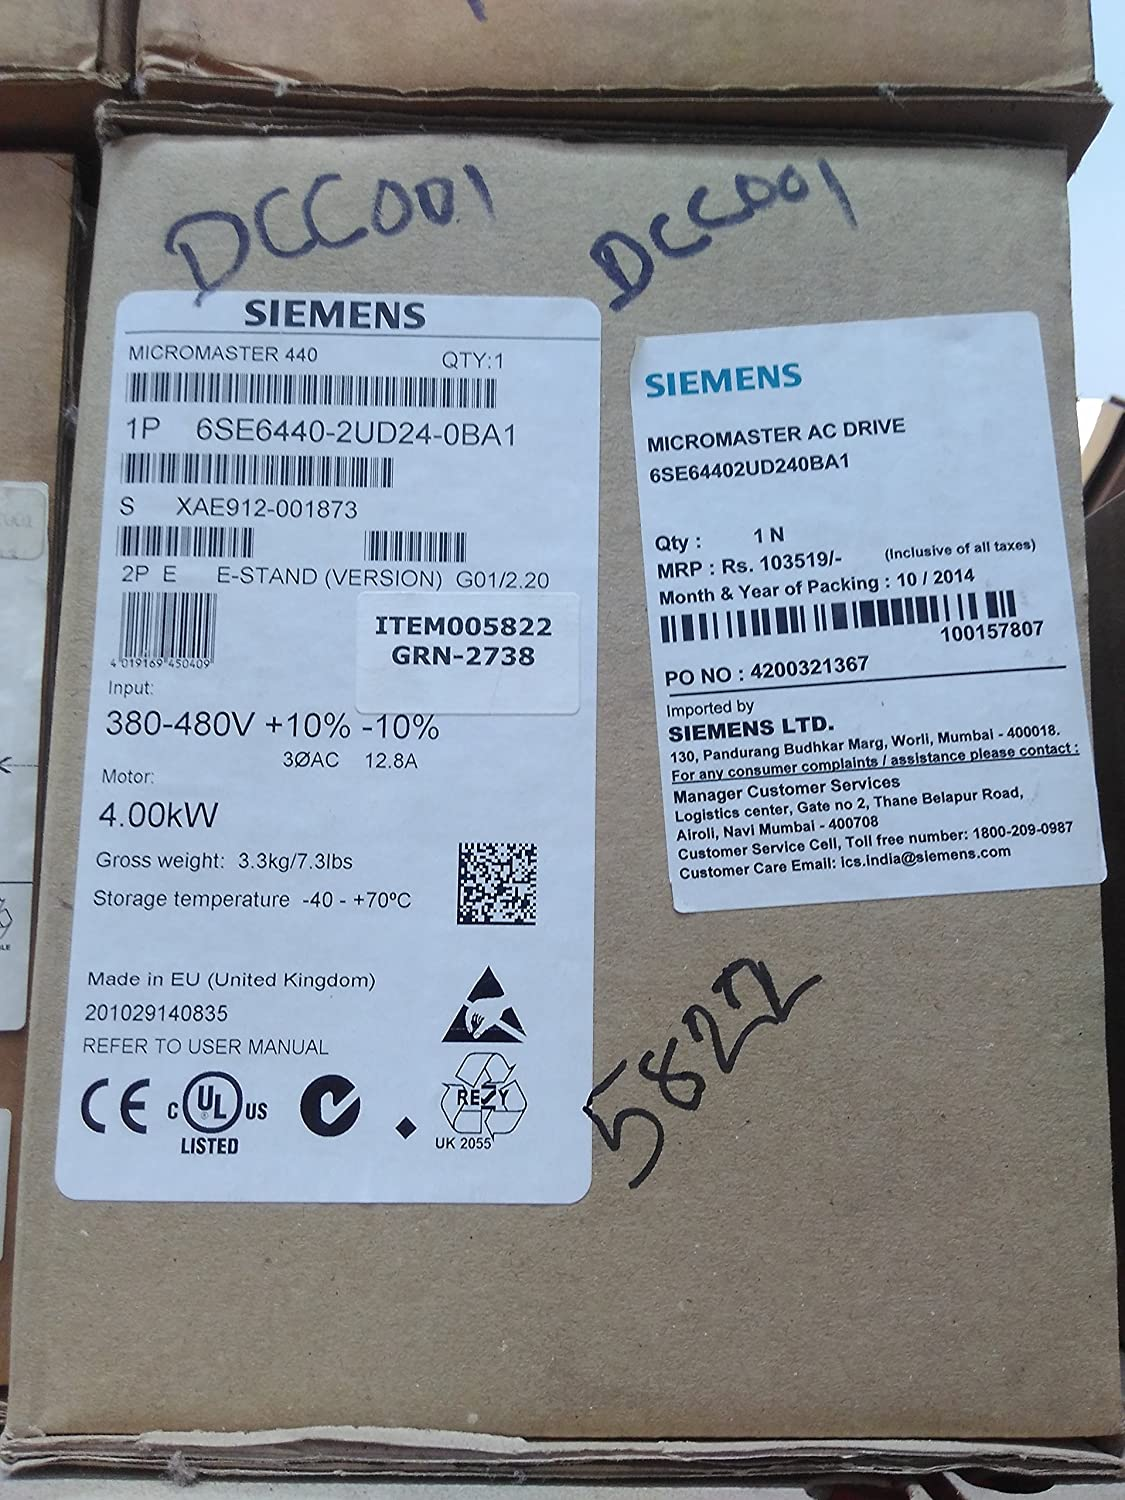 MICROMASTER 440 VFD WITHOUT FILTER - SIEMENS: Amazon.in: Amazon.in